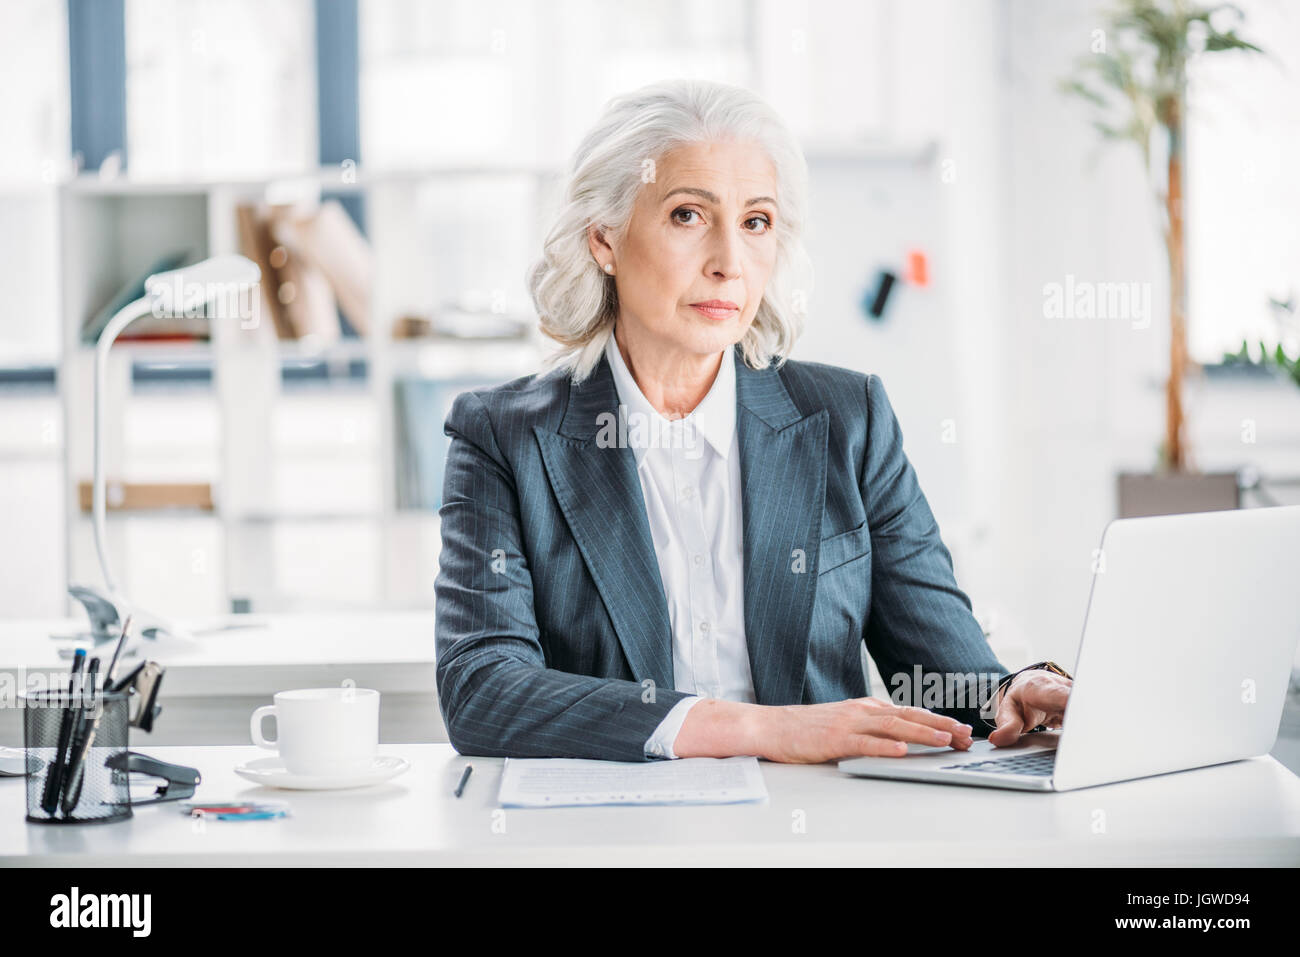 portrait of confident businesswoman typing on laptop at workplace in modern office - Stock Image